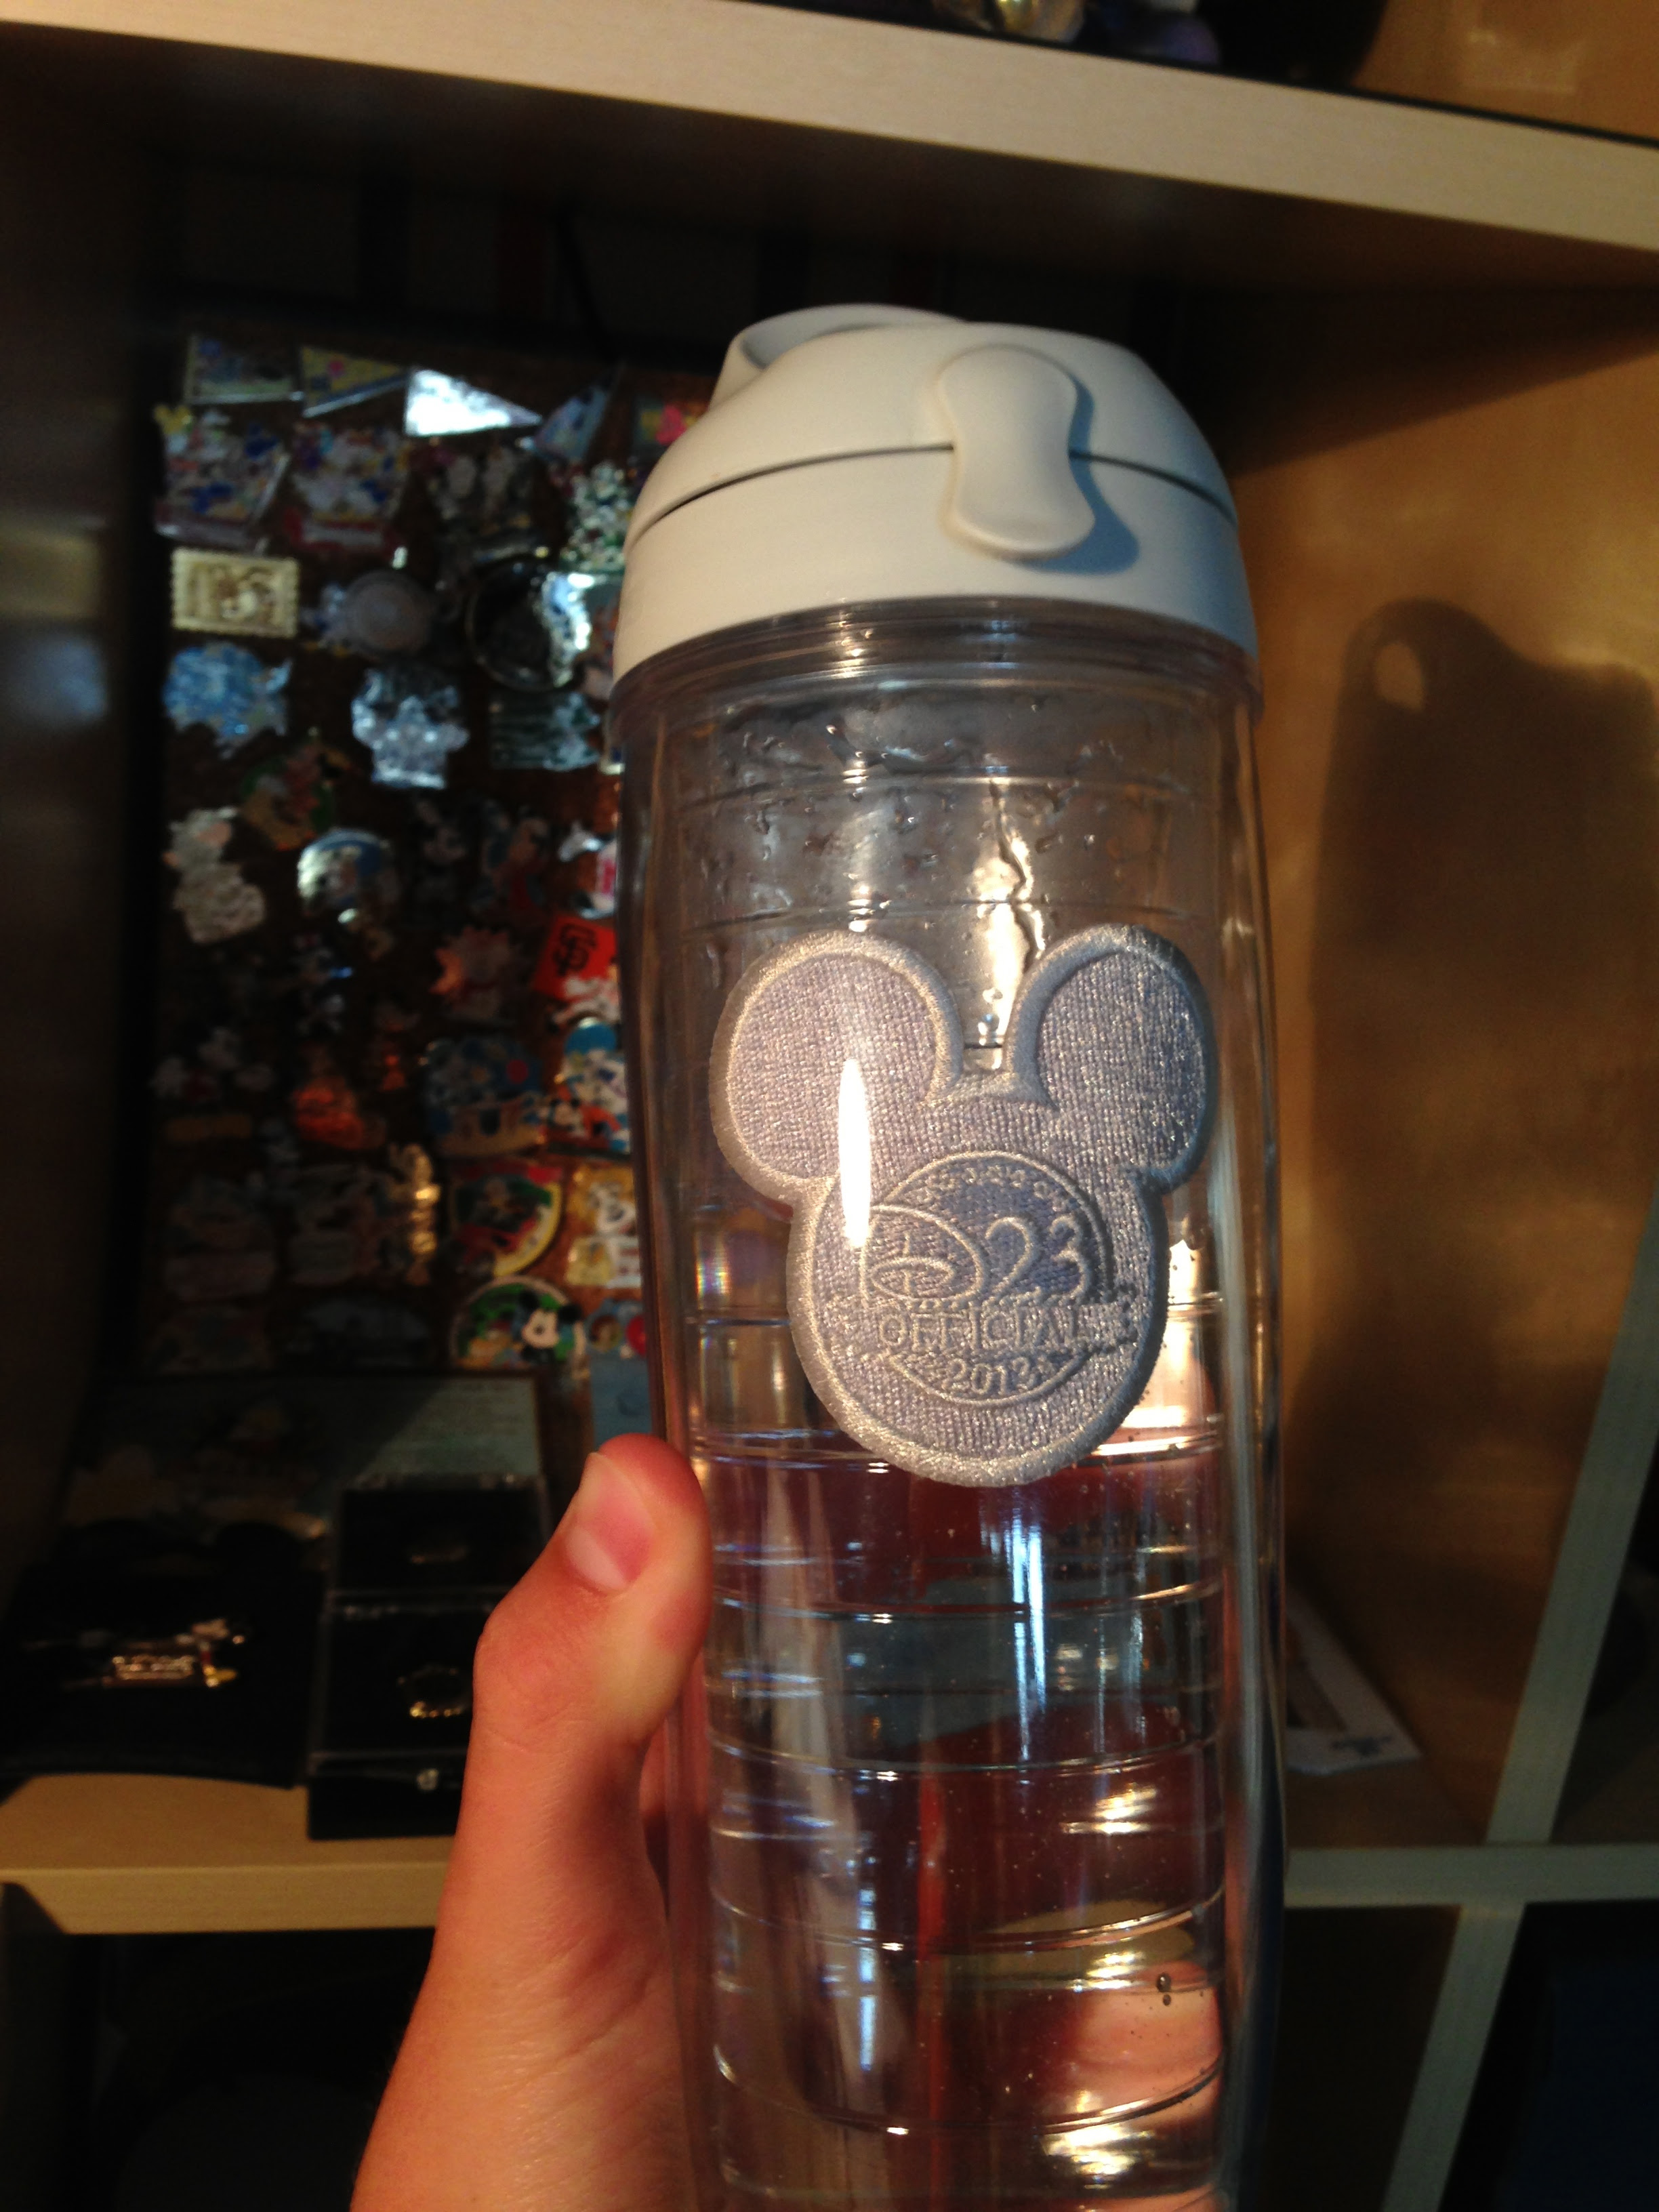 Win A D23 Expo Tervis Tumbler They Were Featured At The D23 Expo